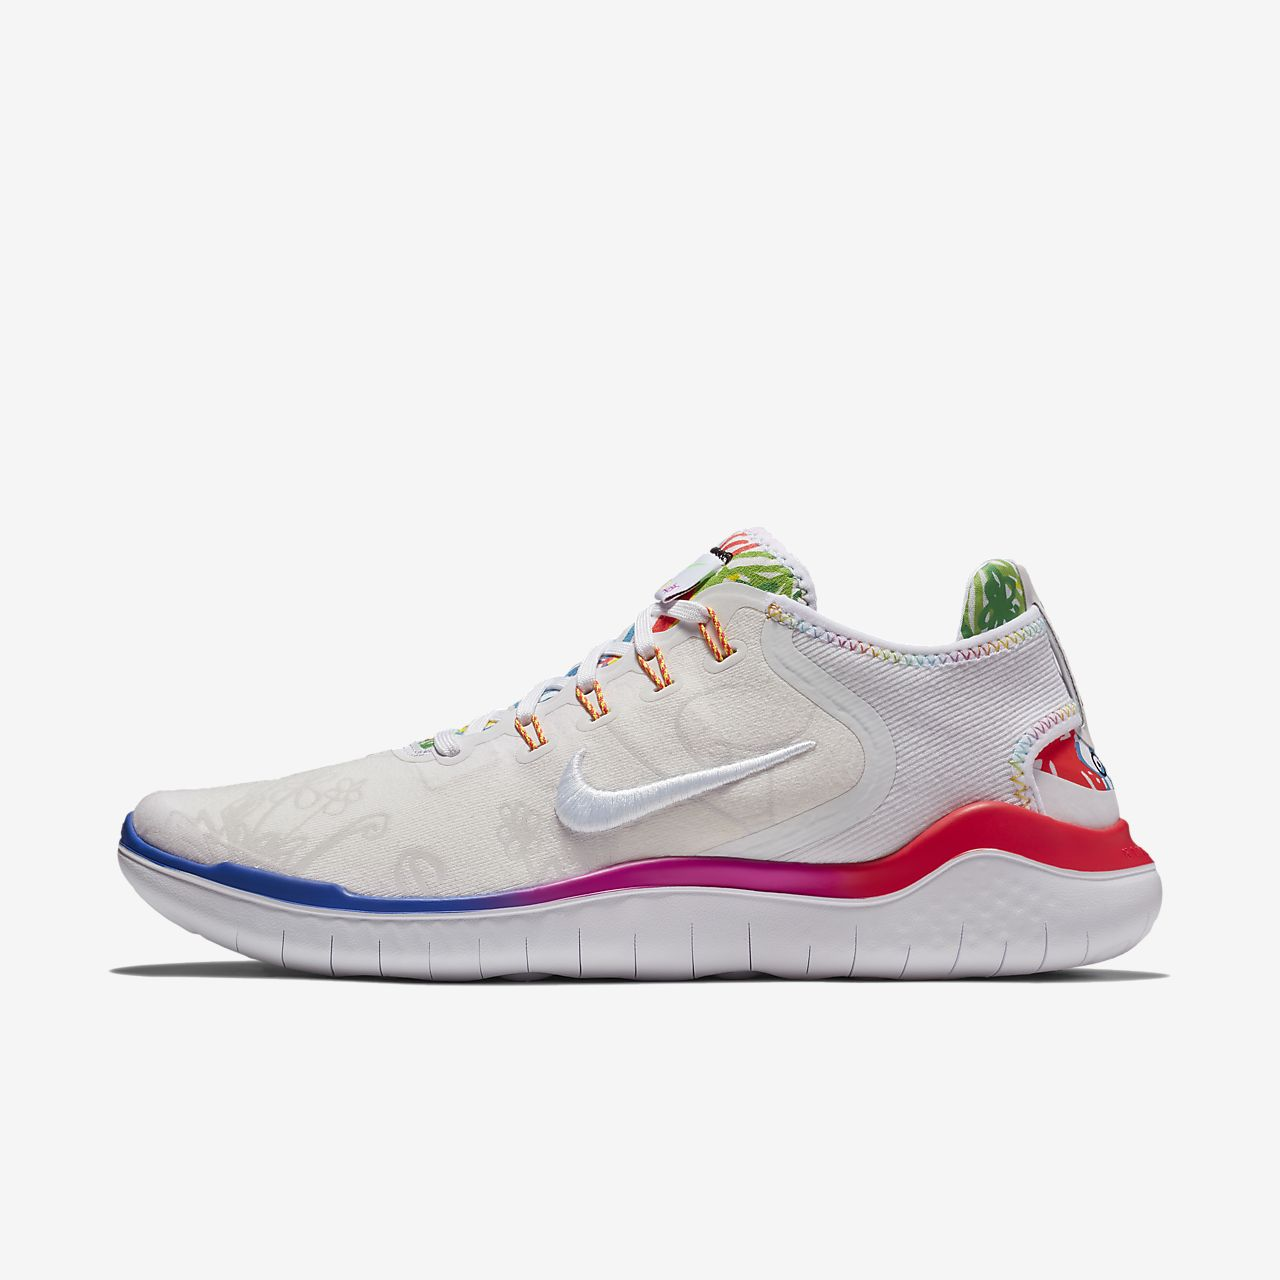 WMNS NIKE FREE RN 2018 - FOOTWEAR - Low-tops & sneakers Nike